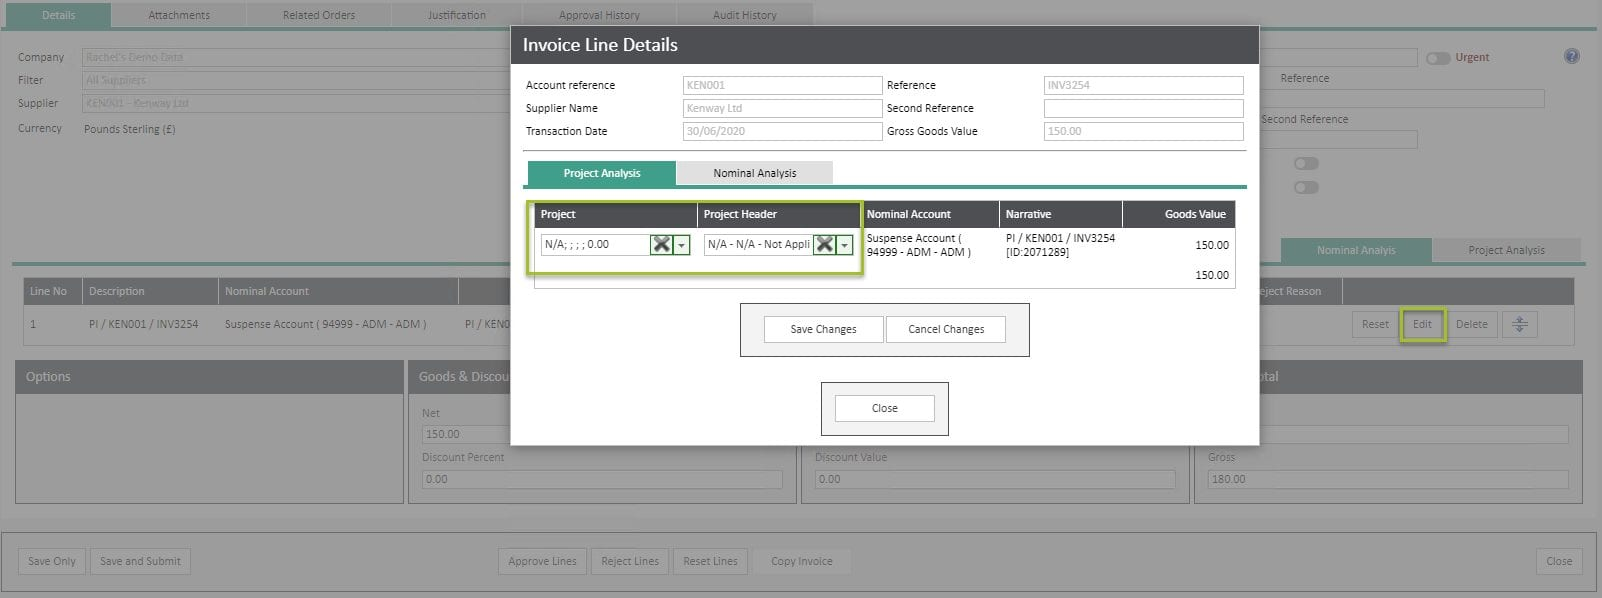 Sicon WAP Invoice Help and User Guide - Invoice HUG Section 6.1 Image 2